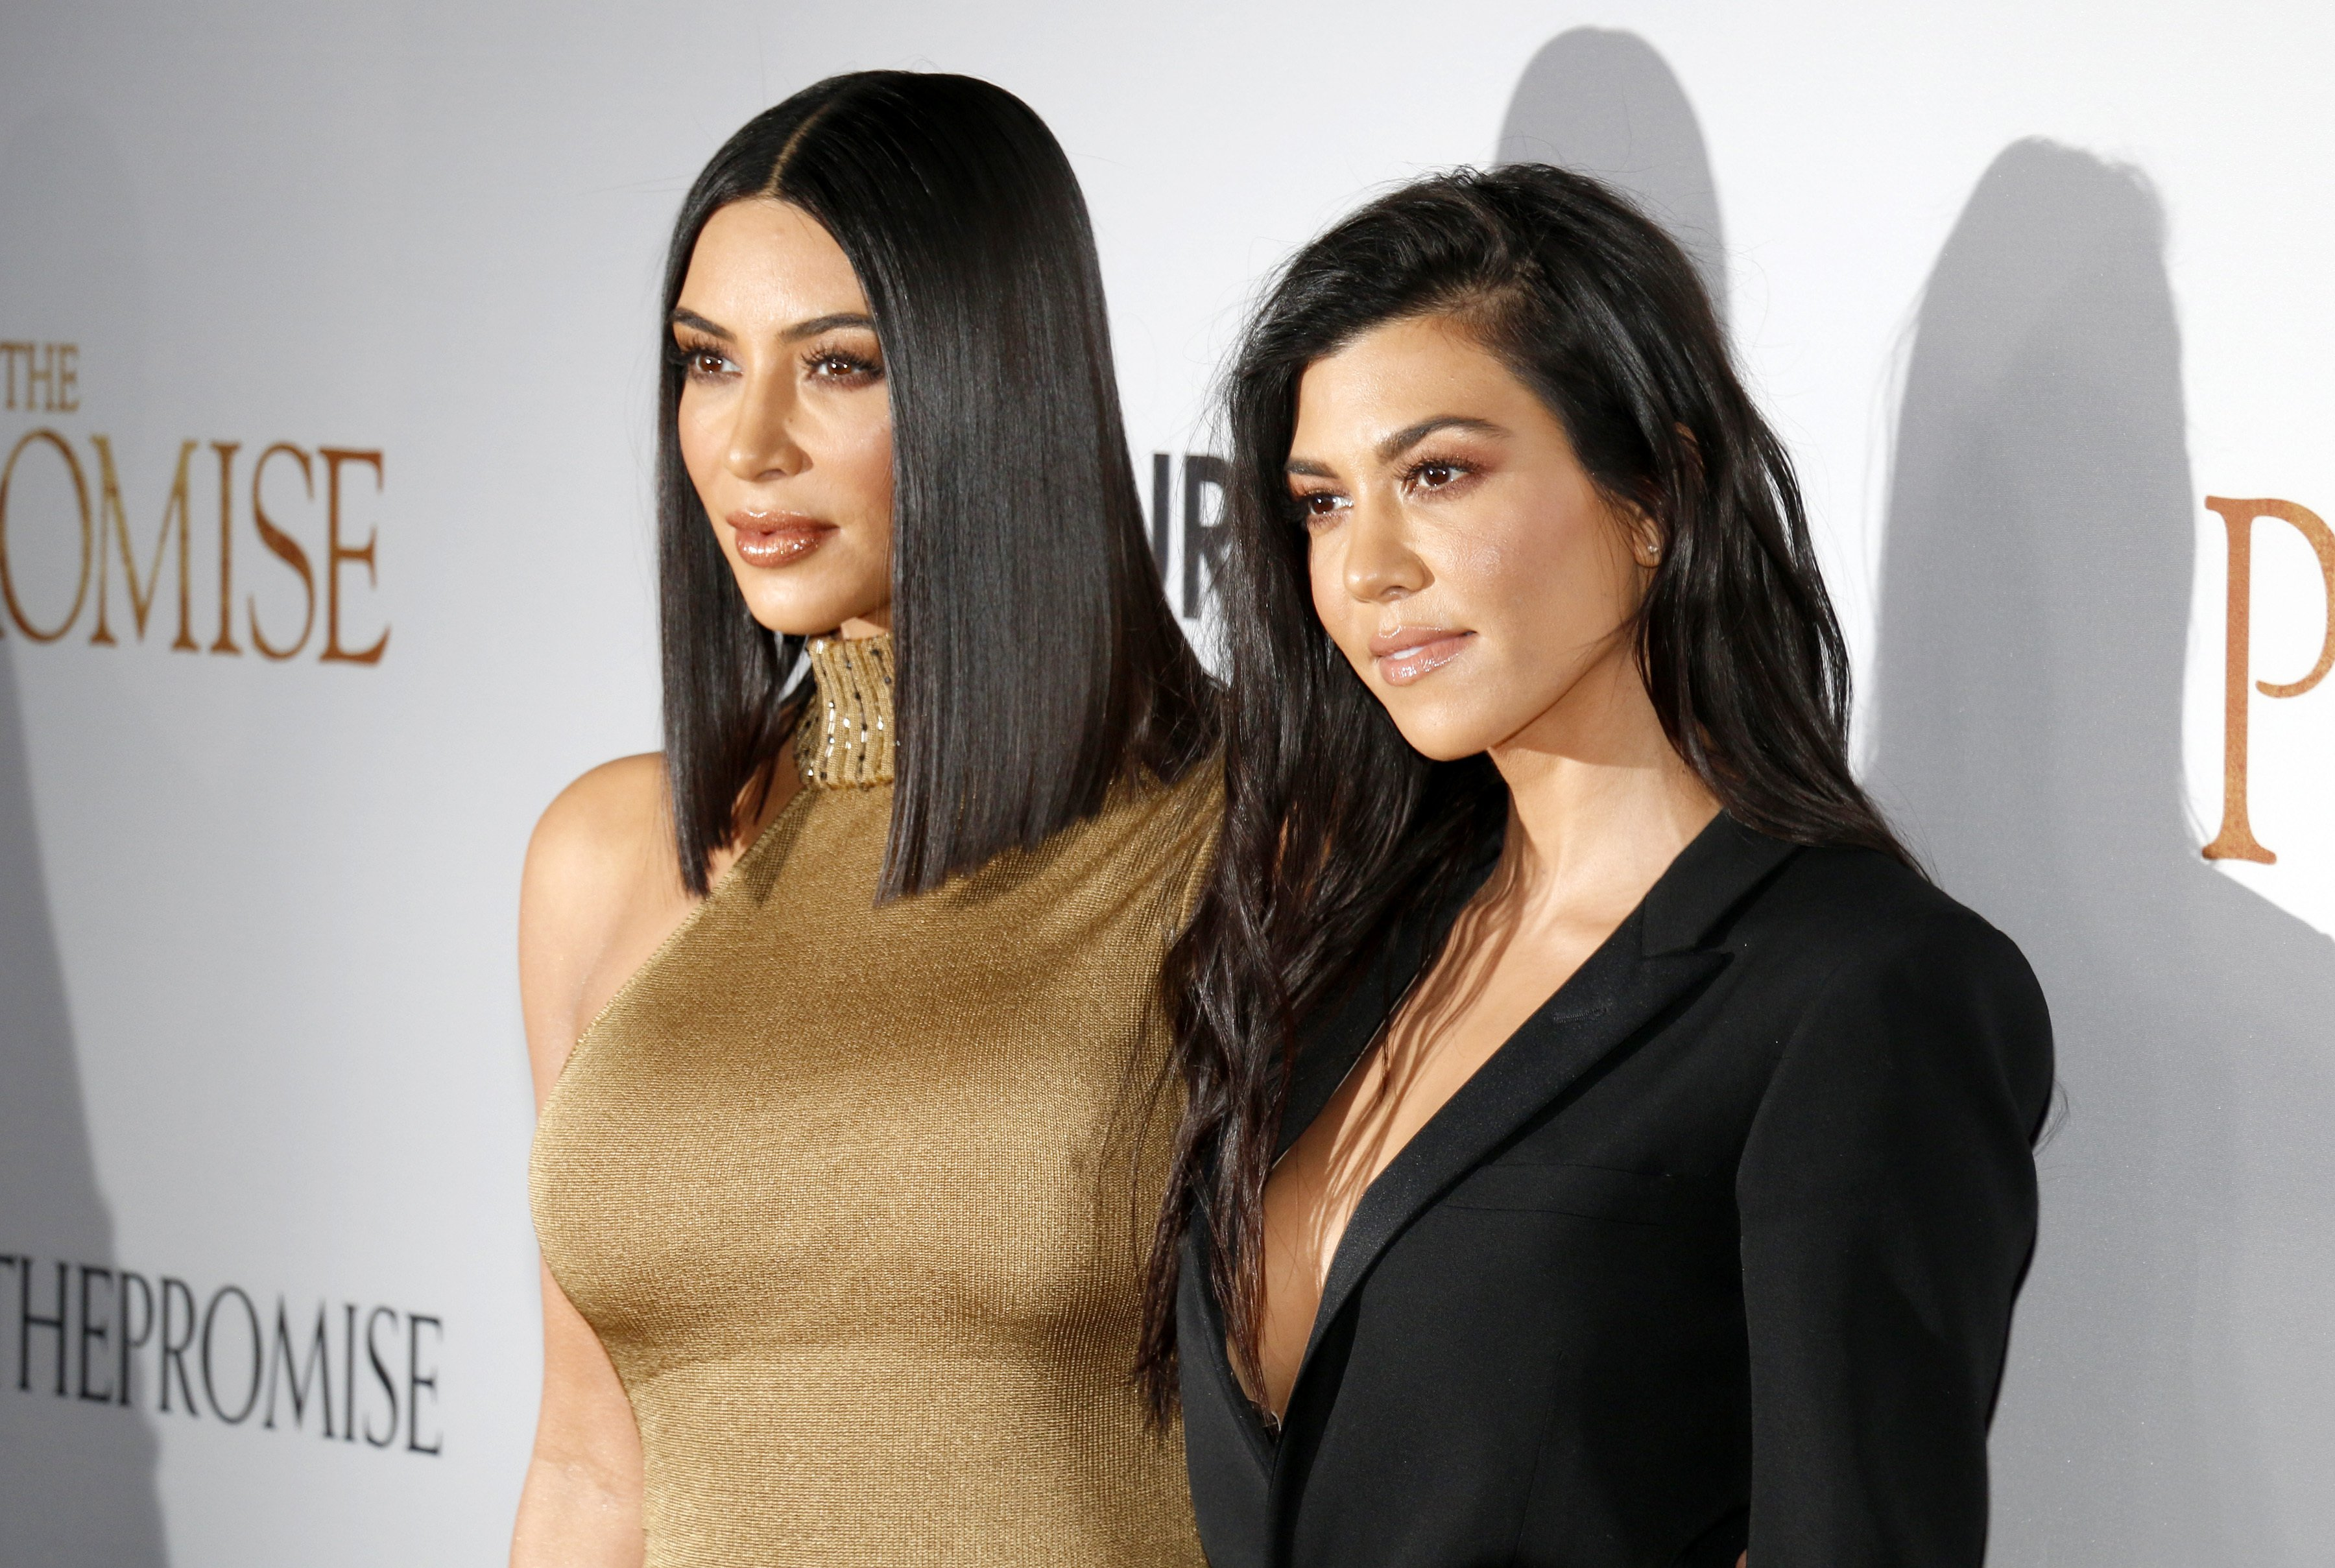 Kim Kardashian West and Kourtney Kardashian at the Los Angeles premiere of 'The Promise' held at the TCL Chinese Theatre in Hollywood, USA on April 12, 2017 | Photo: Shutterstock